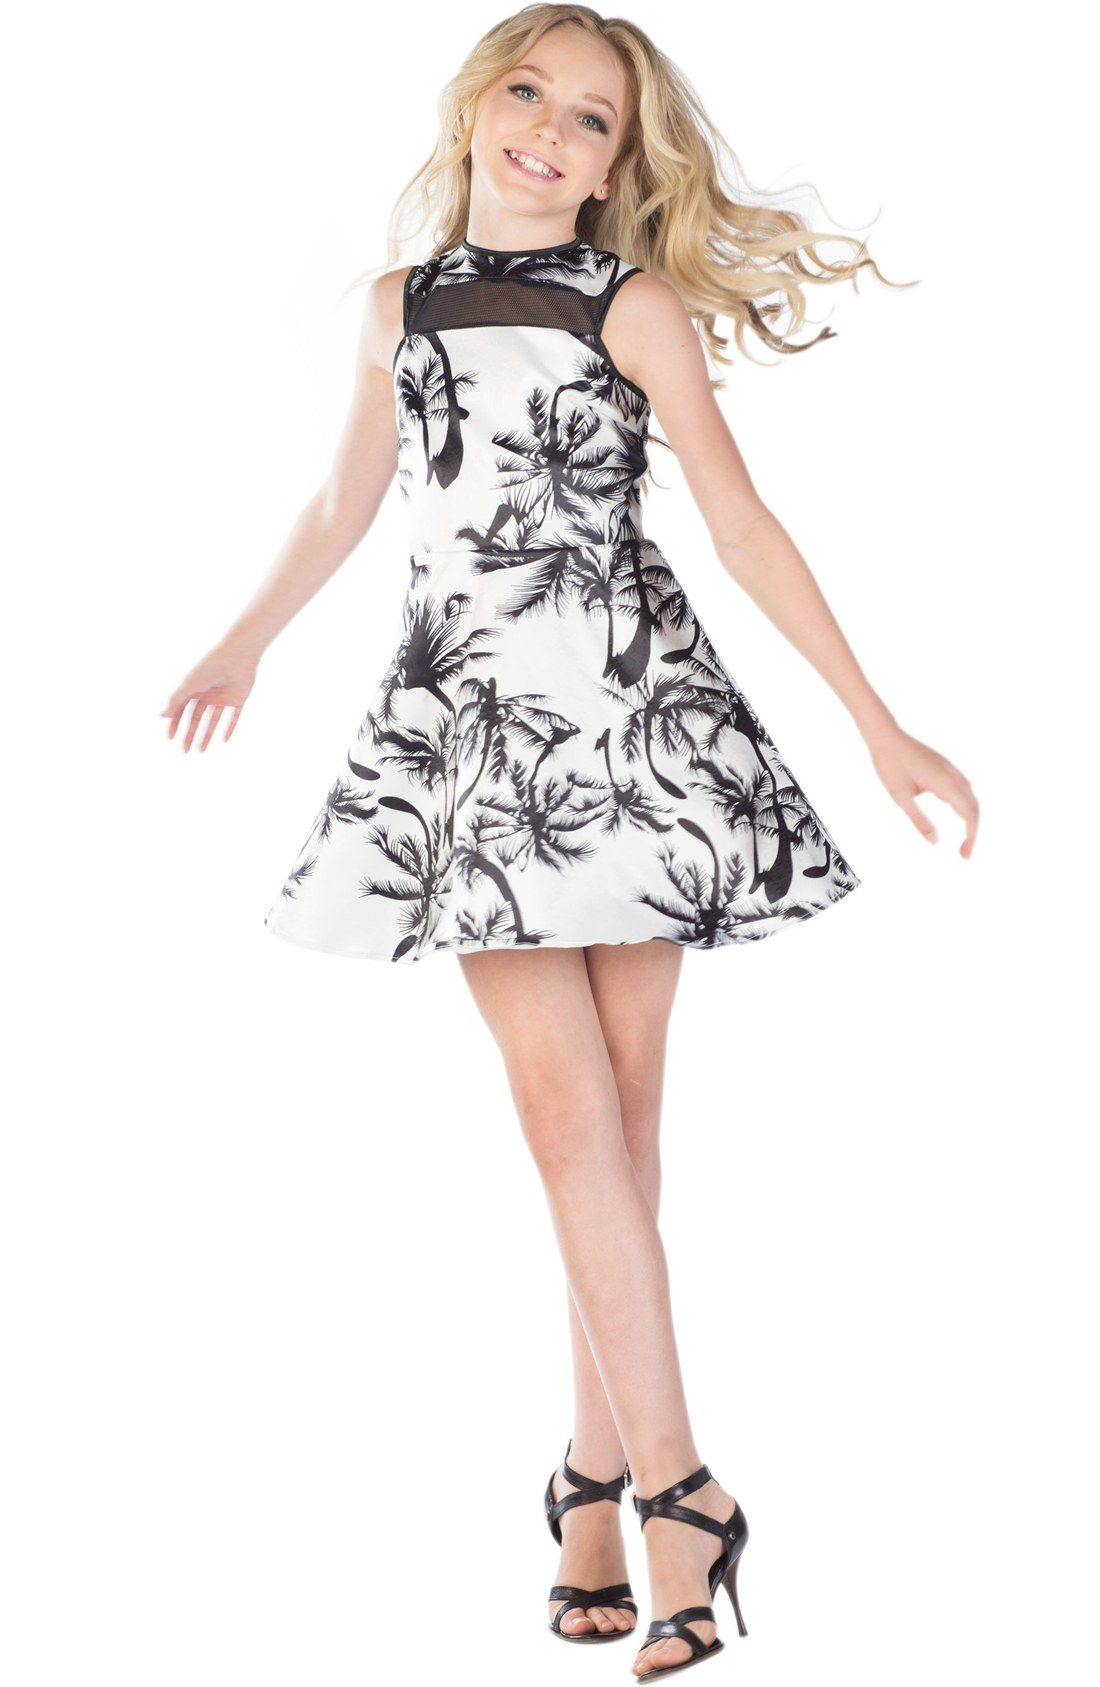 Miss behave unadyau print skater dress big girls little hoes in